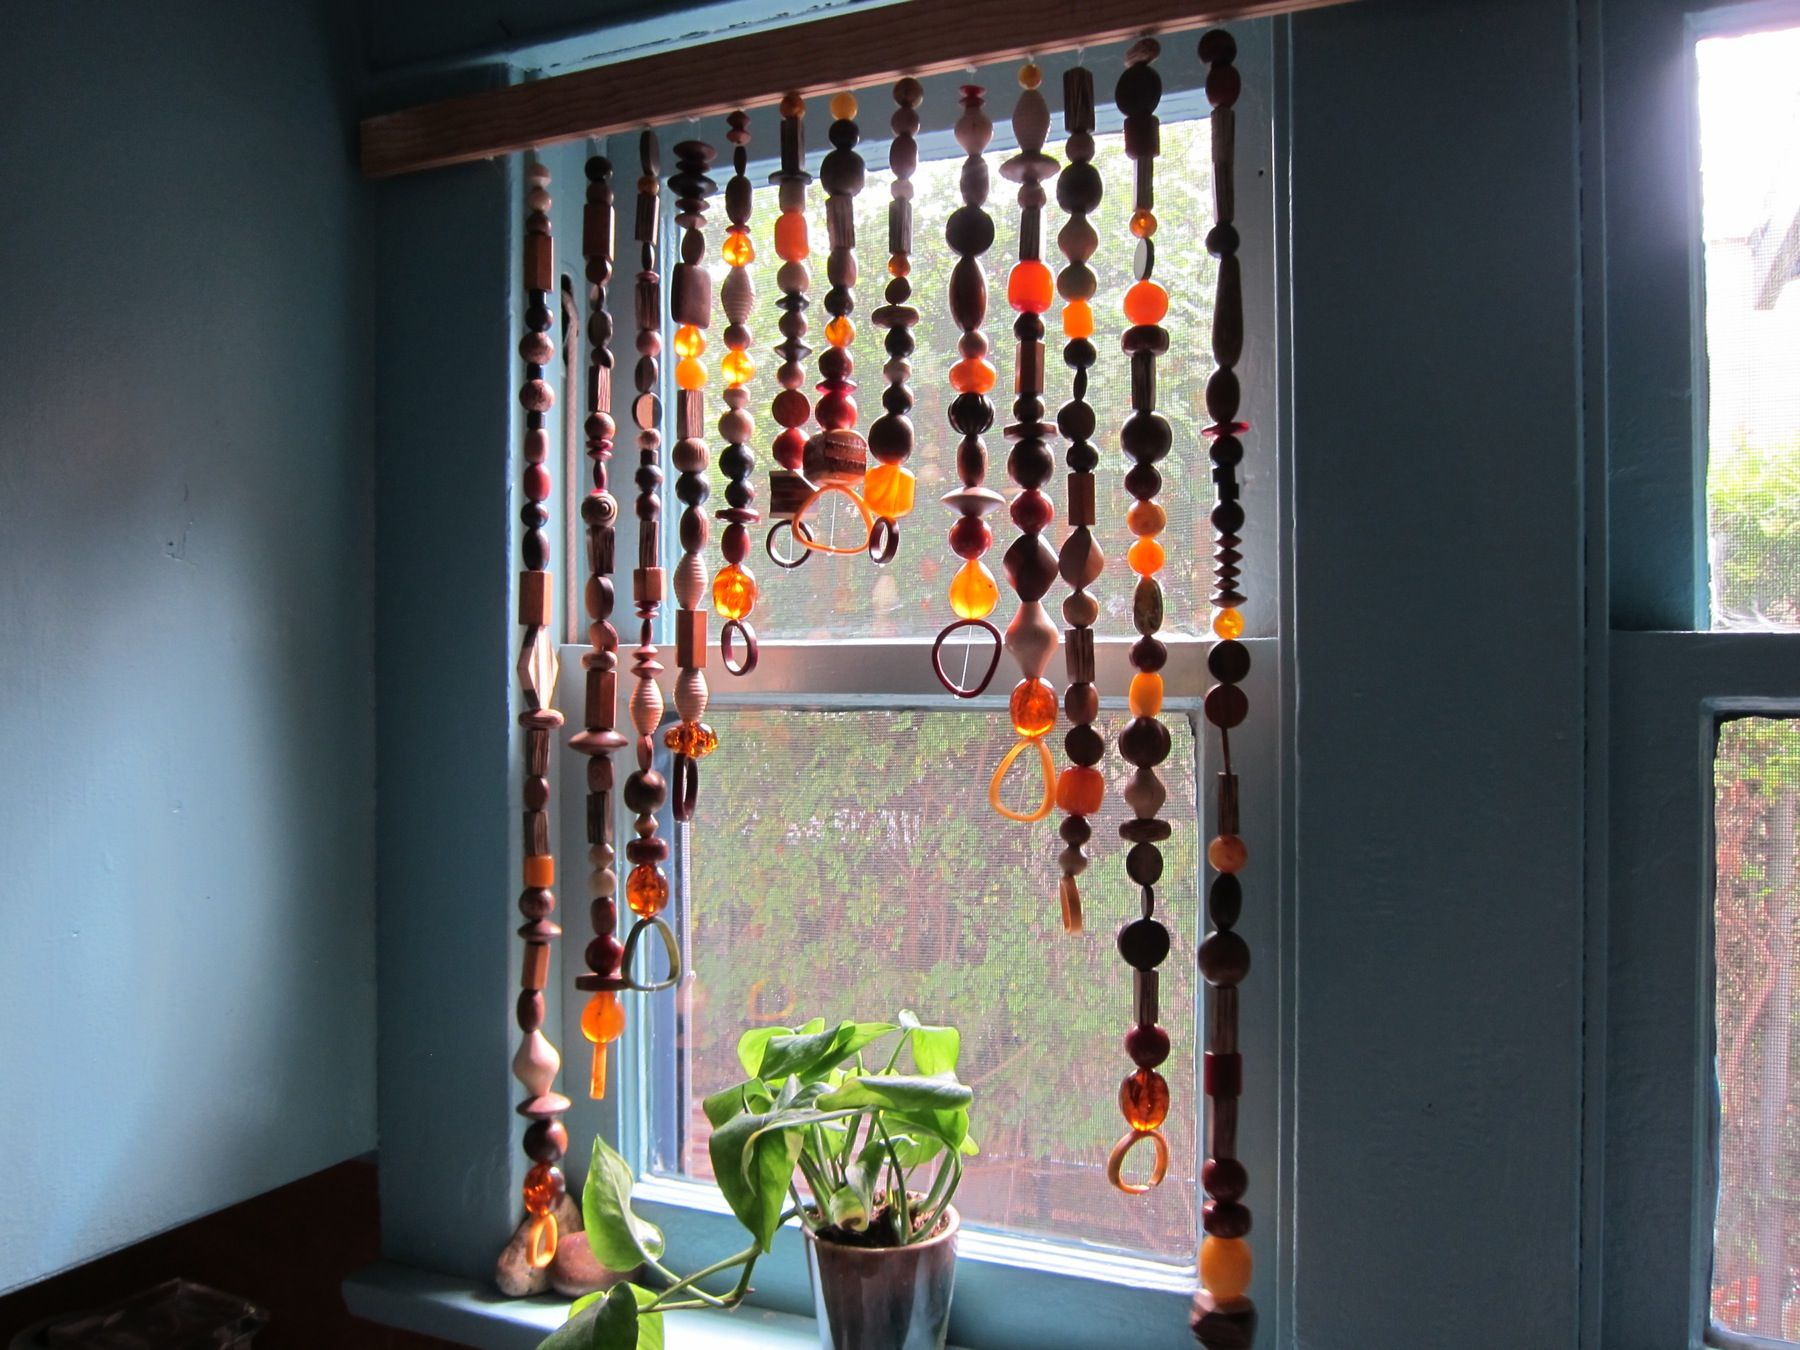 Bead curtain room divider - How To Make A Bead Curtain